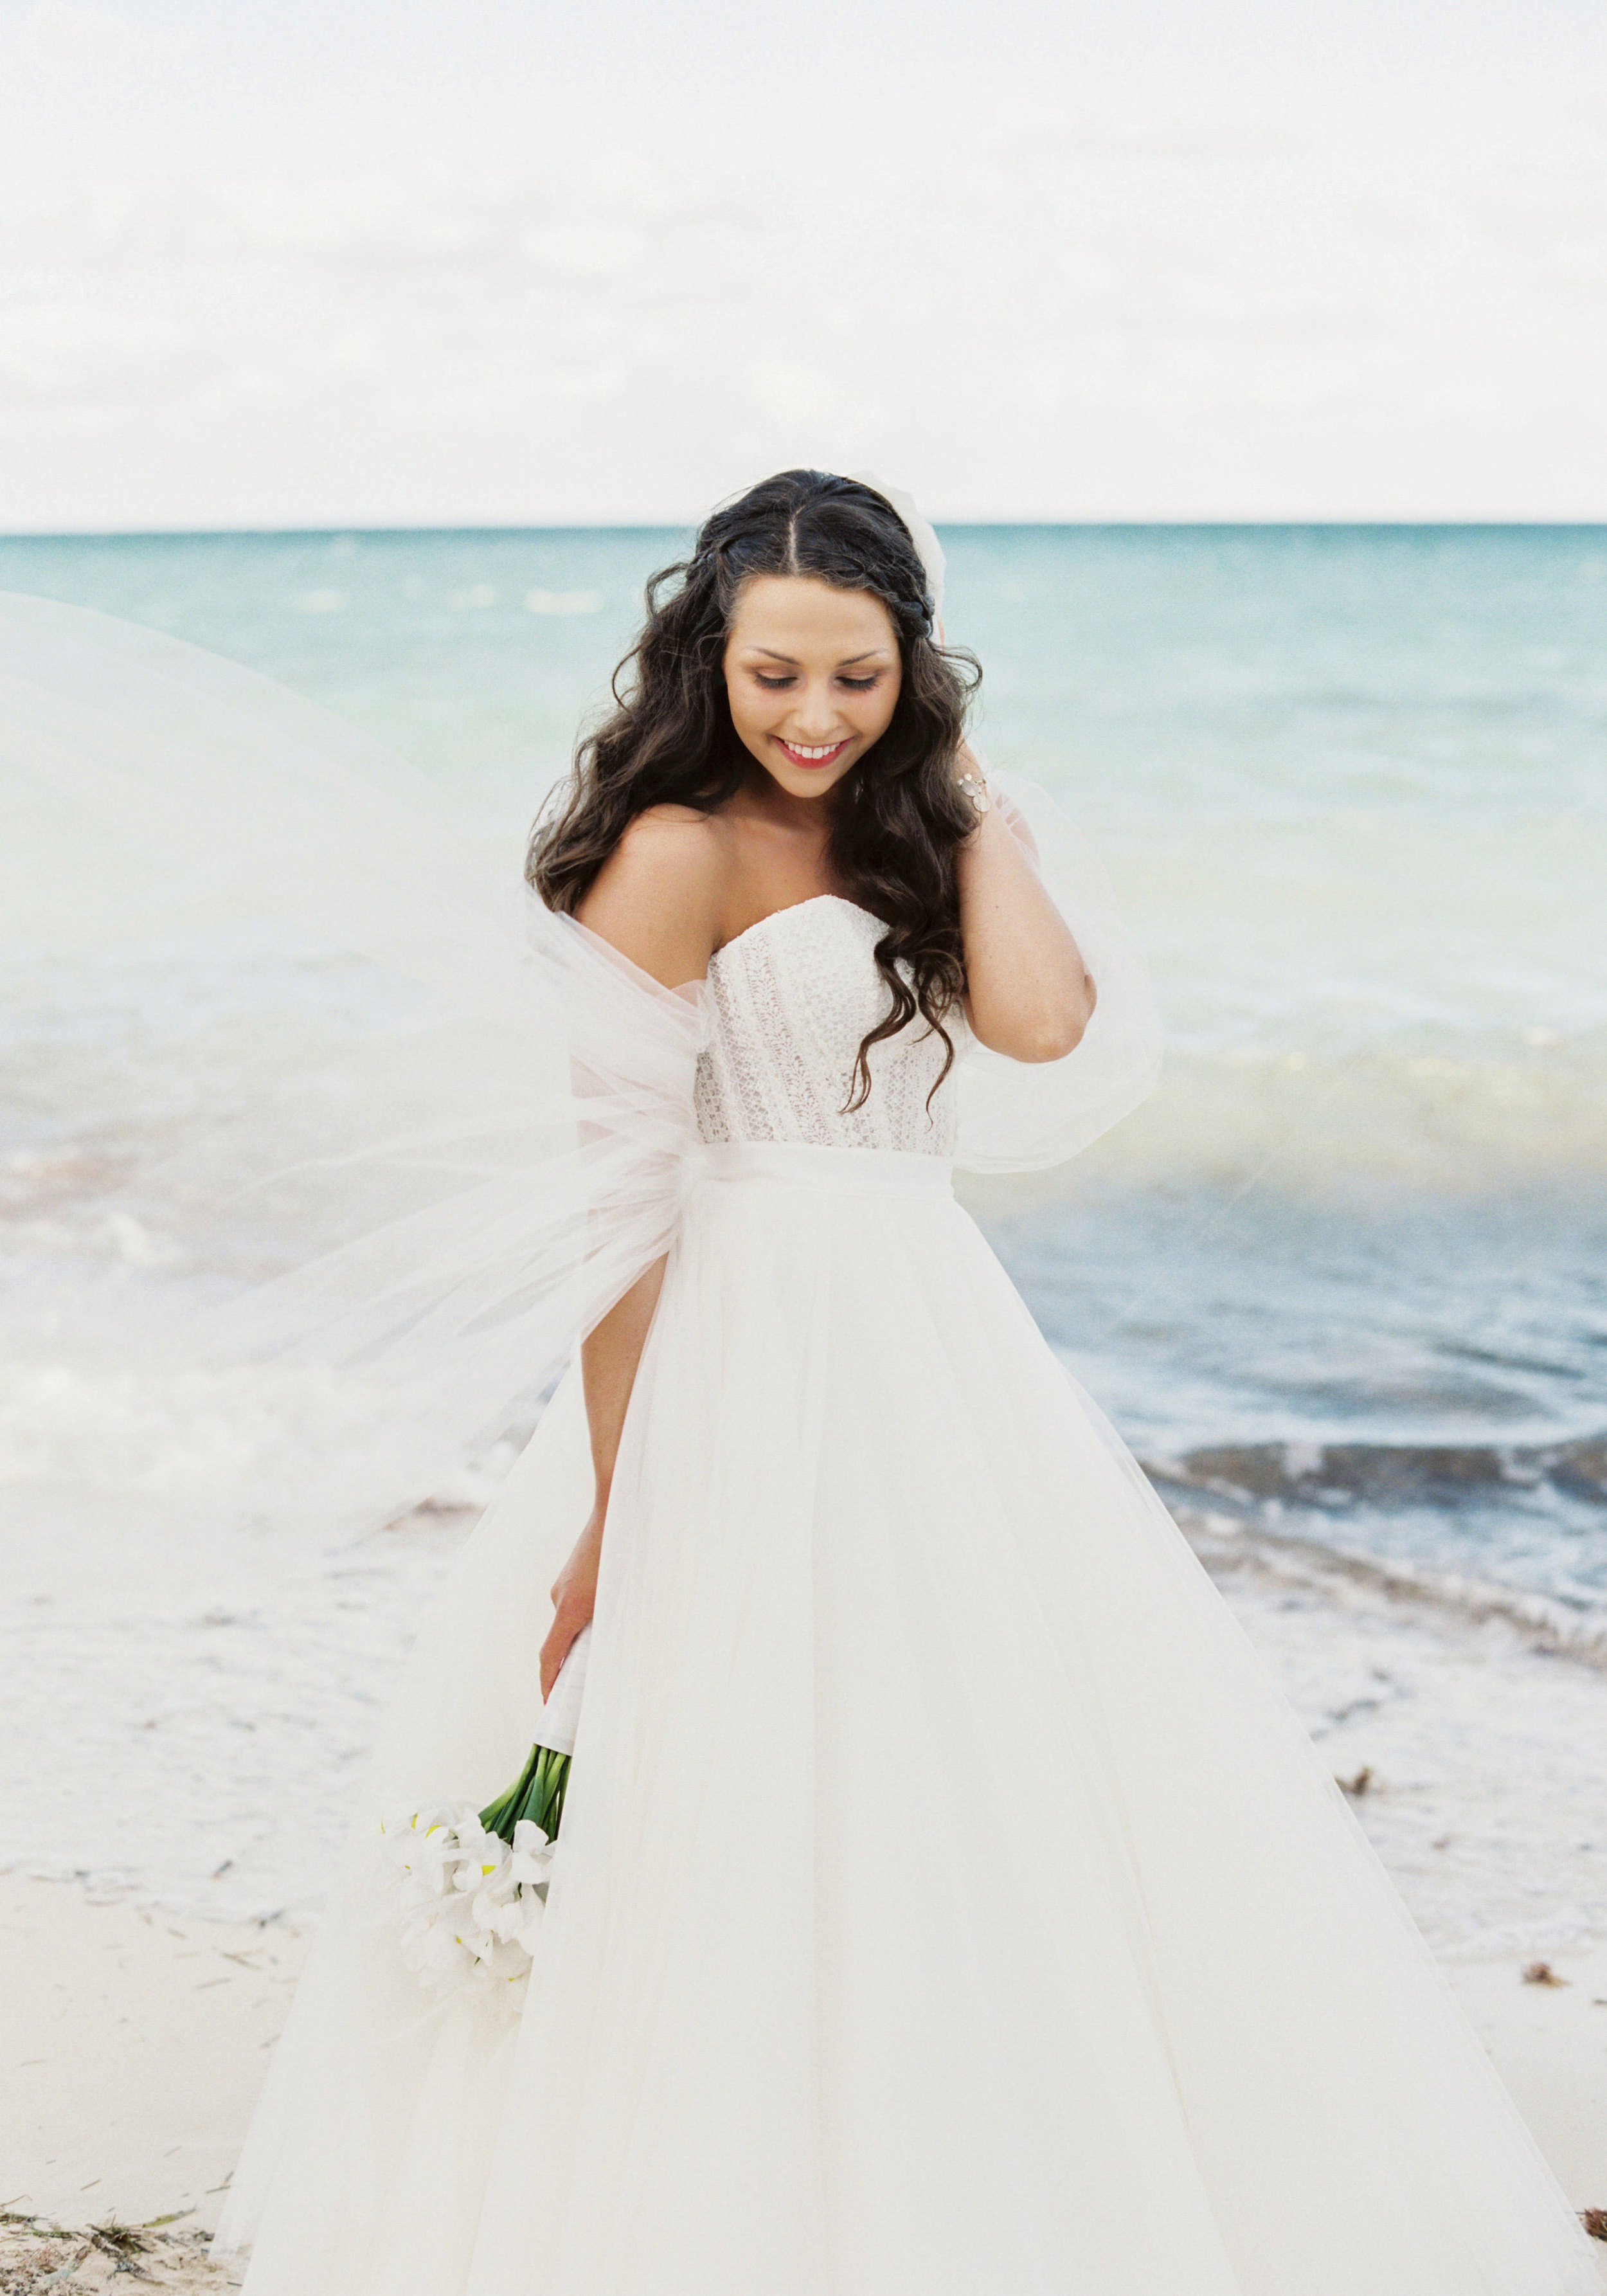 Bride & Groom in Mexico, destination wedding on the beach, Bridal separates, Watters Ashan skirt, Bride with hair down.